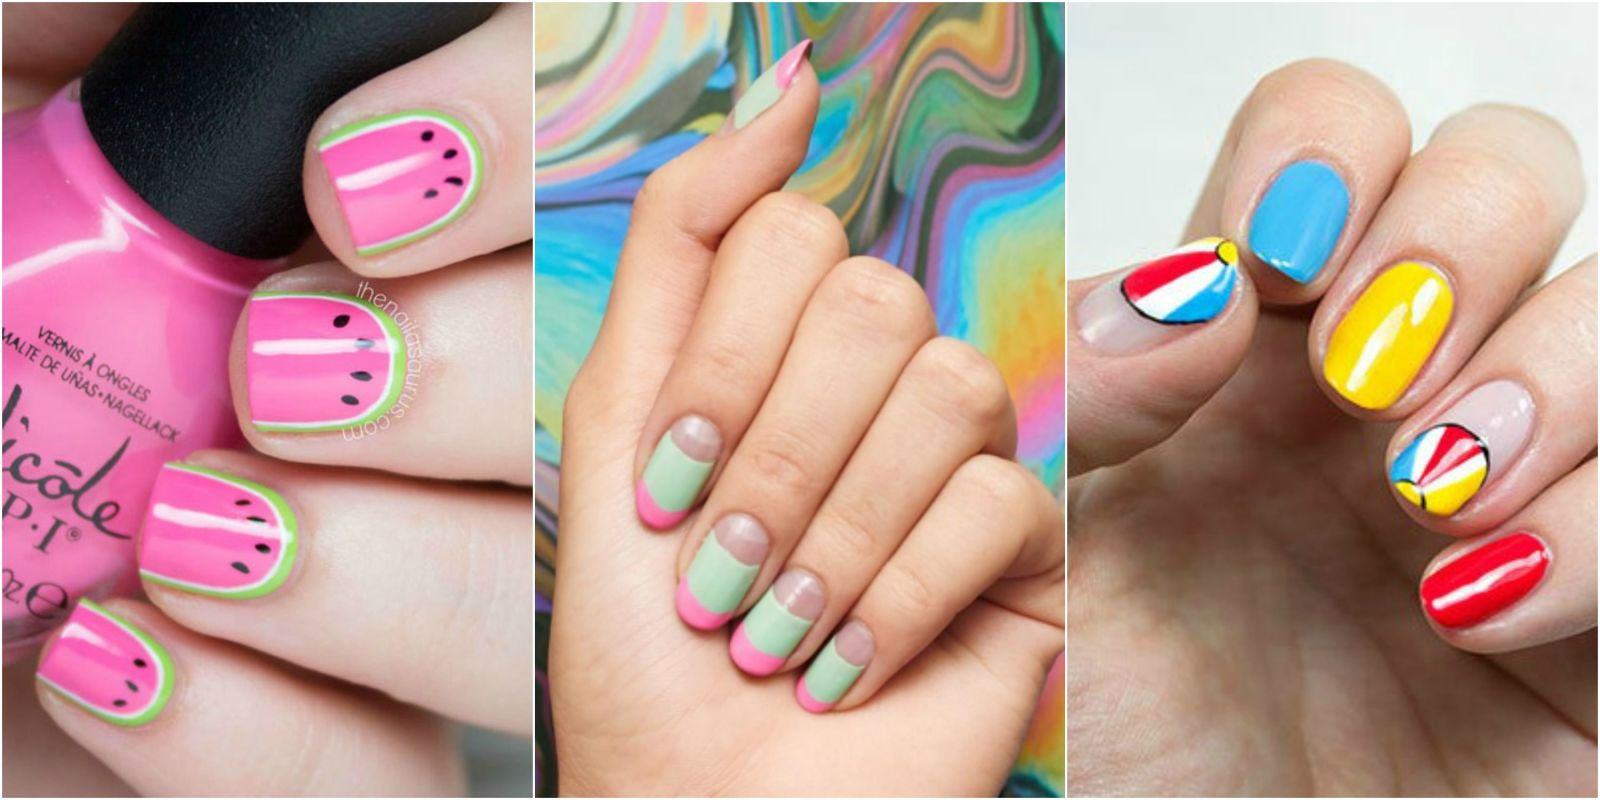 Delightful 30 Summer Nail Designs For 2017   Best Nail Polish Art Ideas For Summer